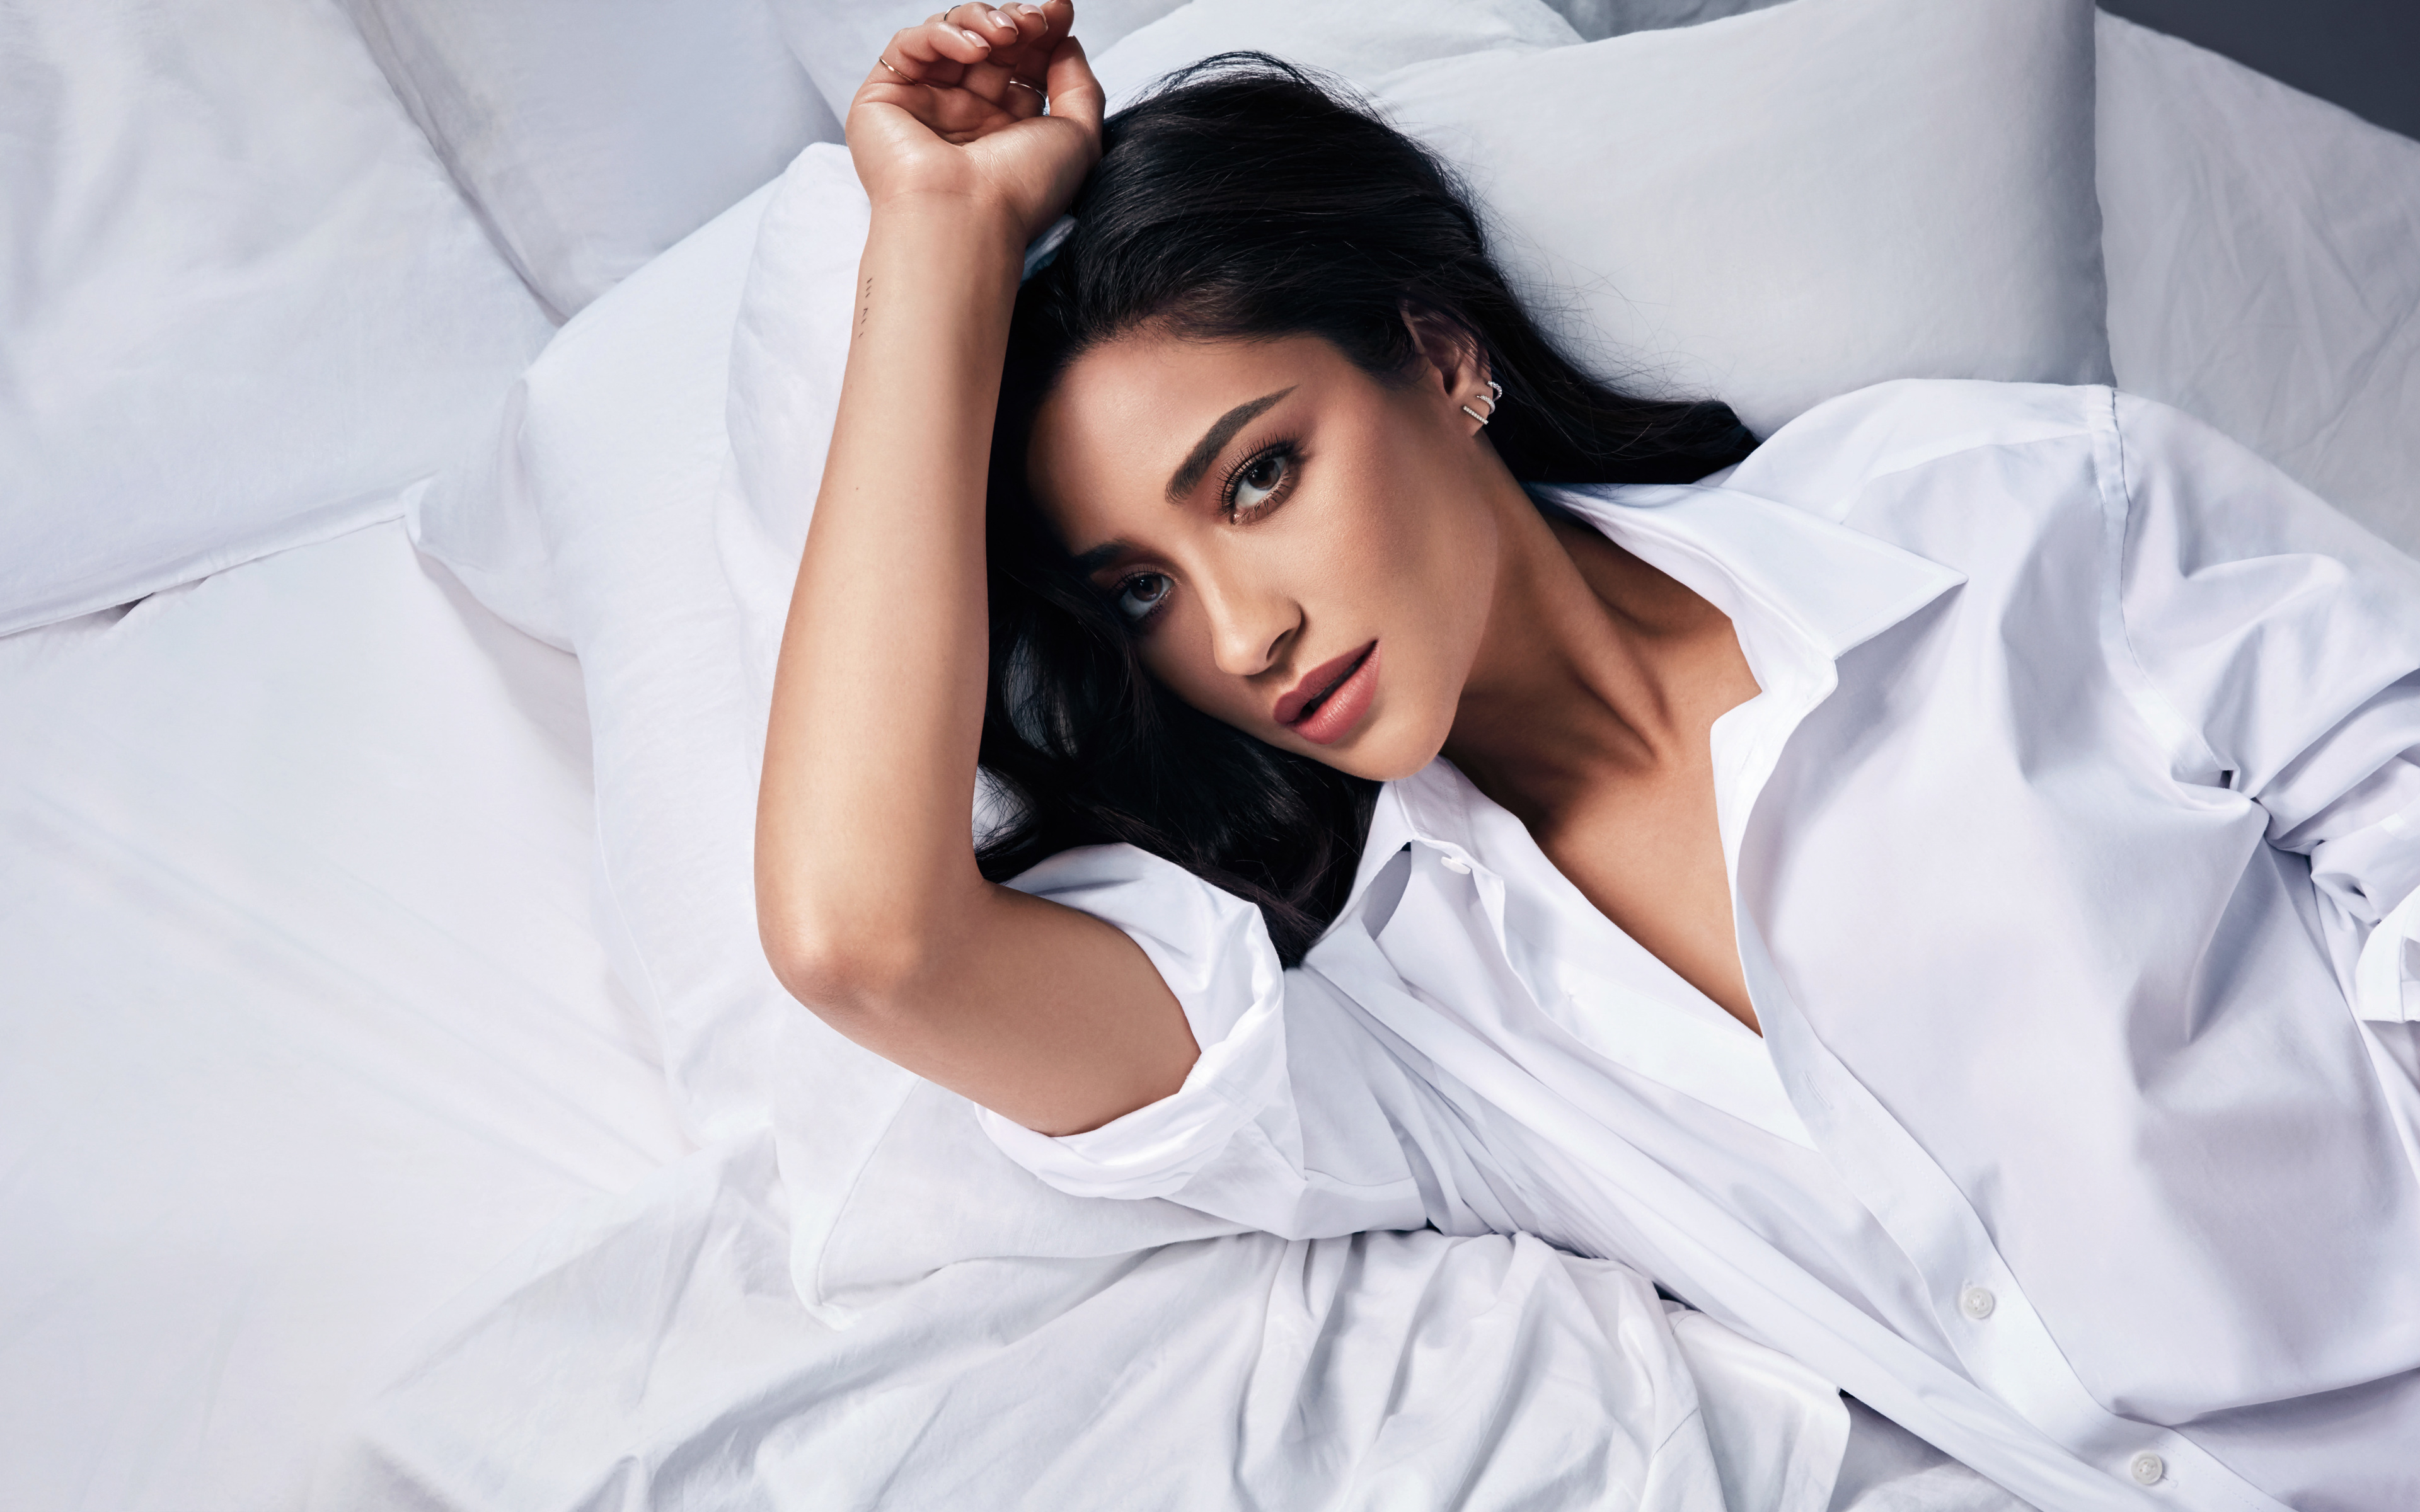 Download wallpapers Shay Mitchell 4k Buxom Cosmetics photoshoot 3840x2400